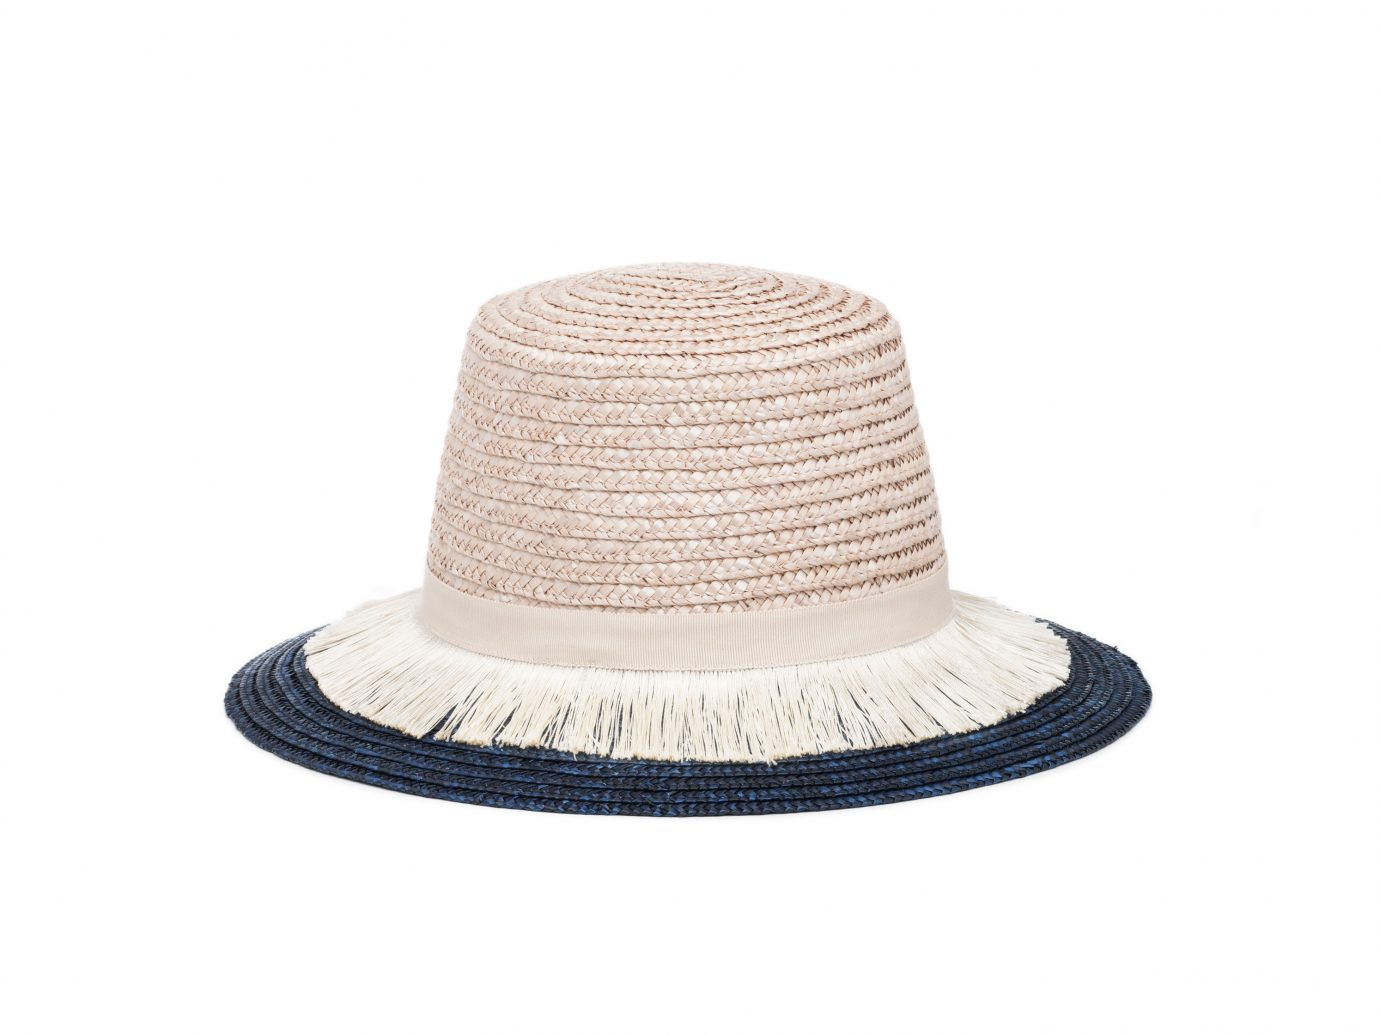 Style + Design clothing hat headdress fashion accessory fedora sun hat cap straw headgear costume accessory